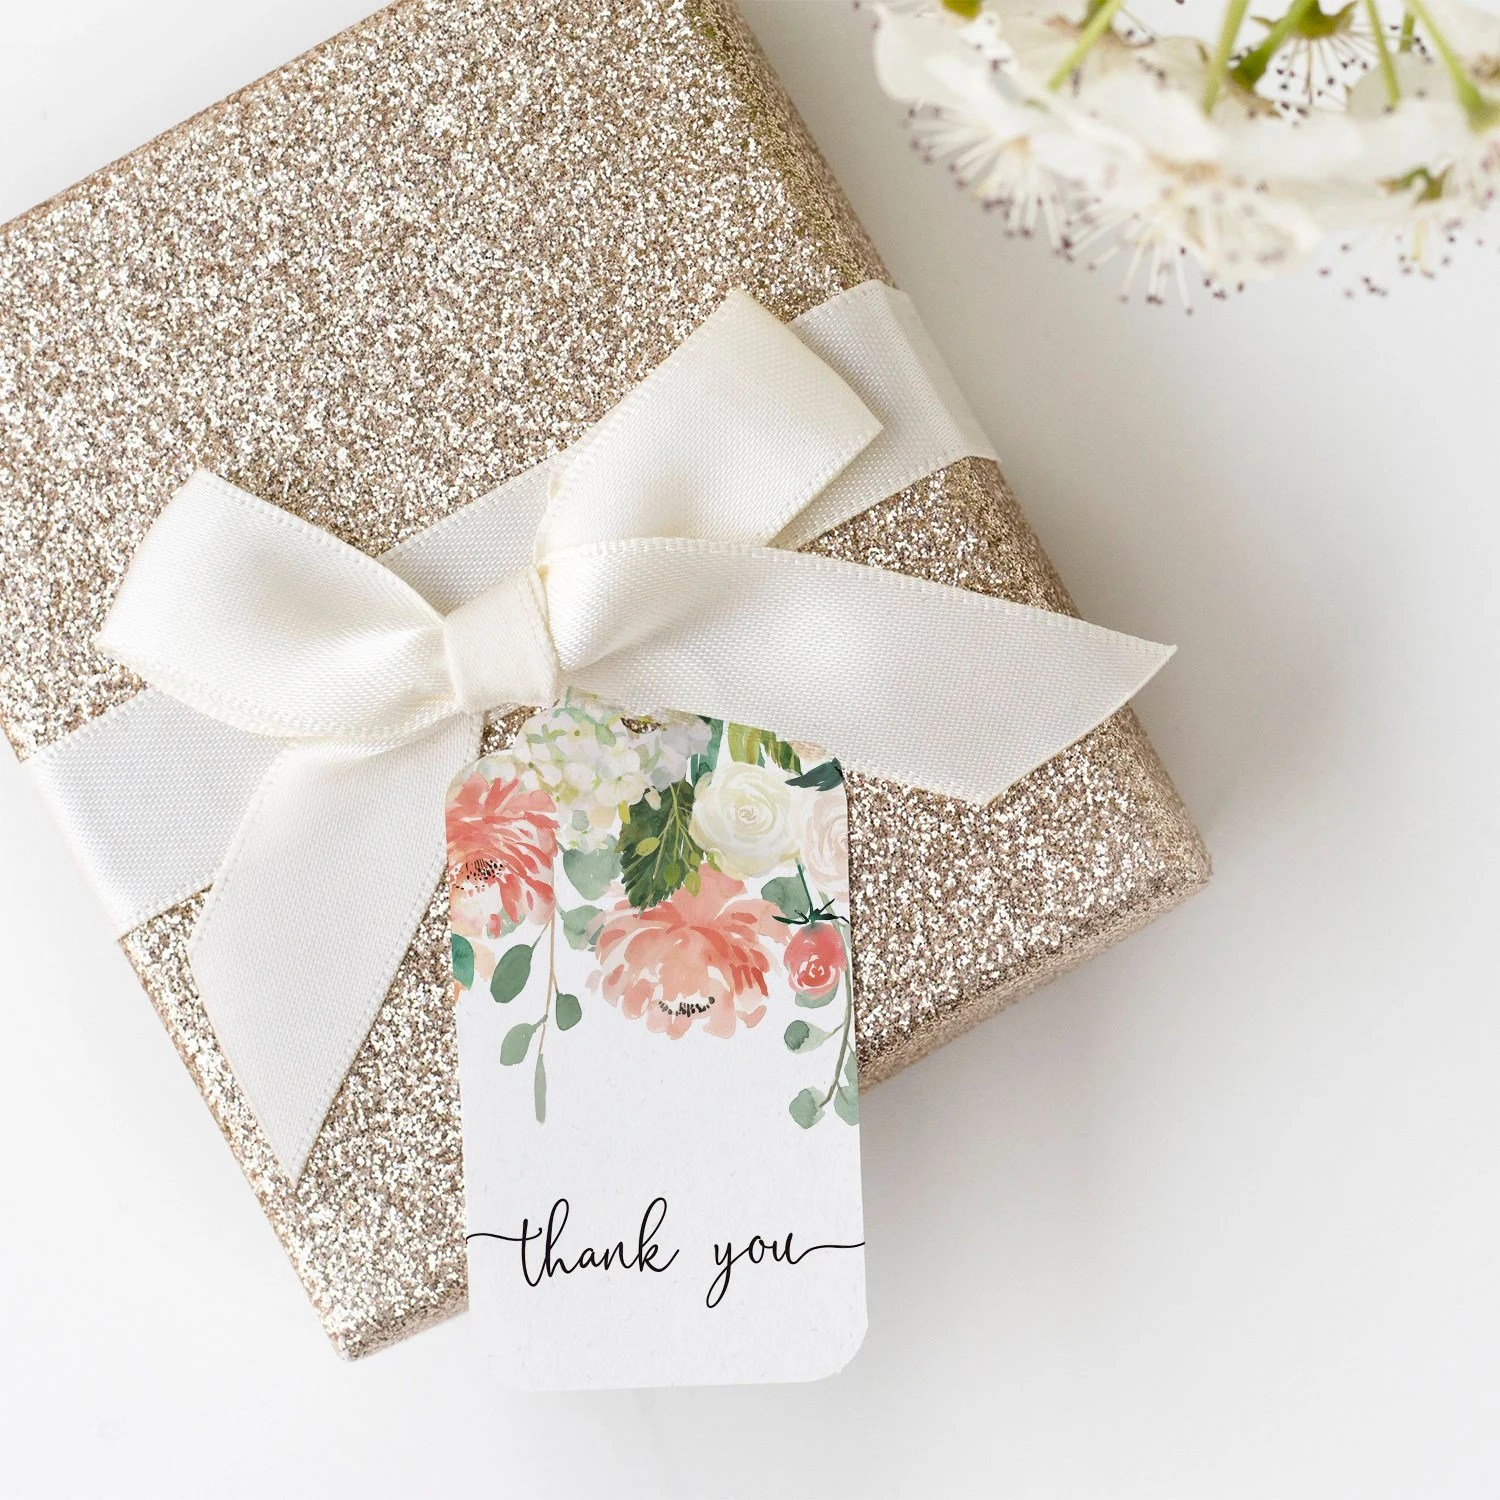 10 thank you gift